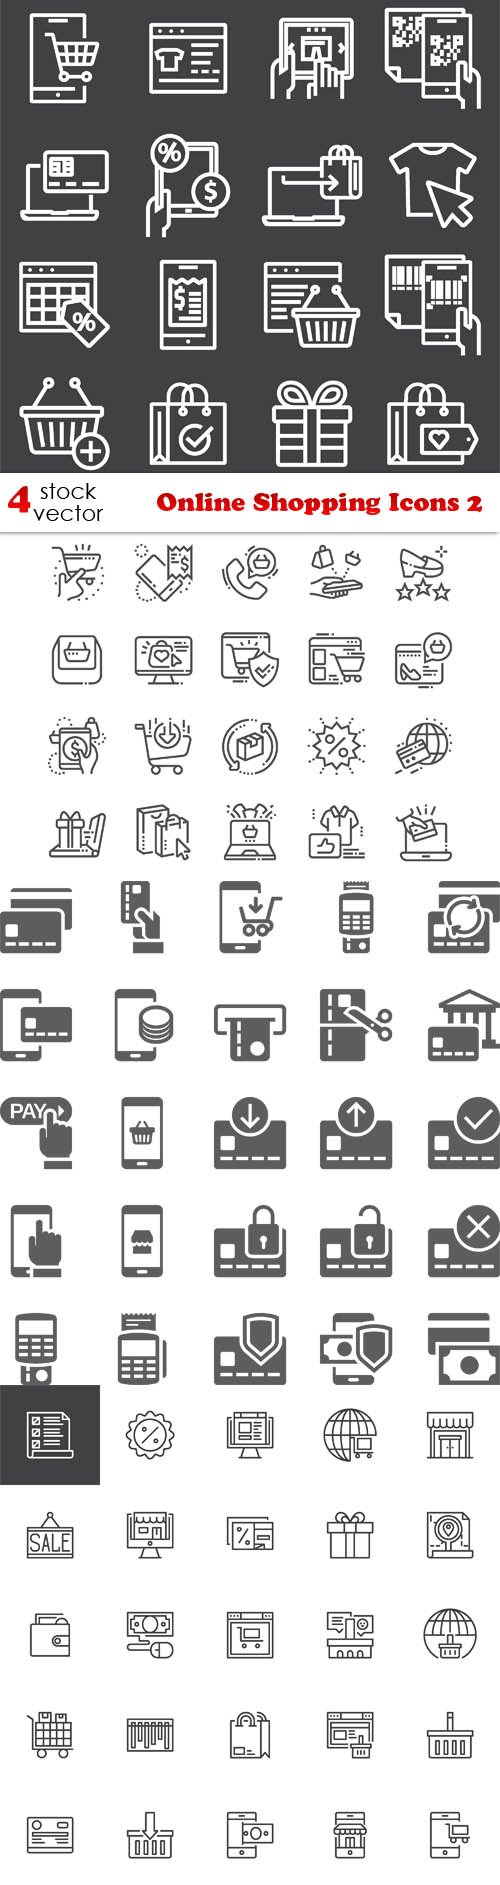 Vectors - Online Shopping Icons 2